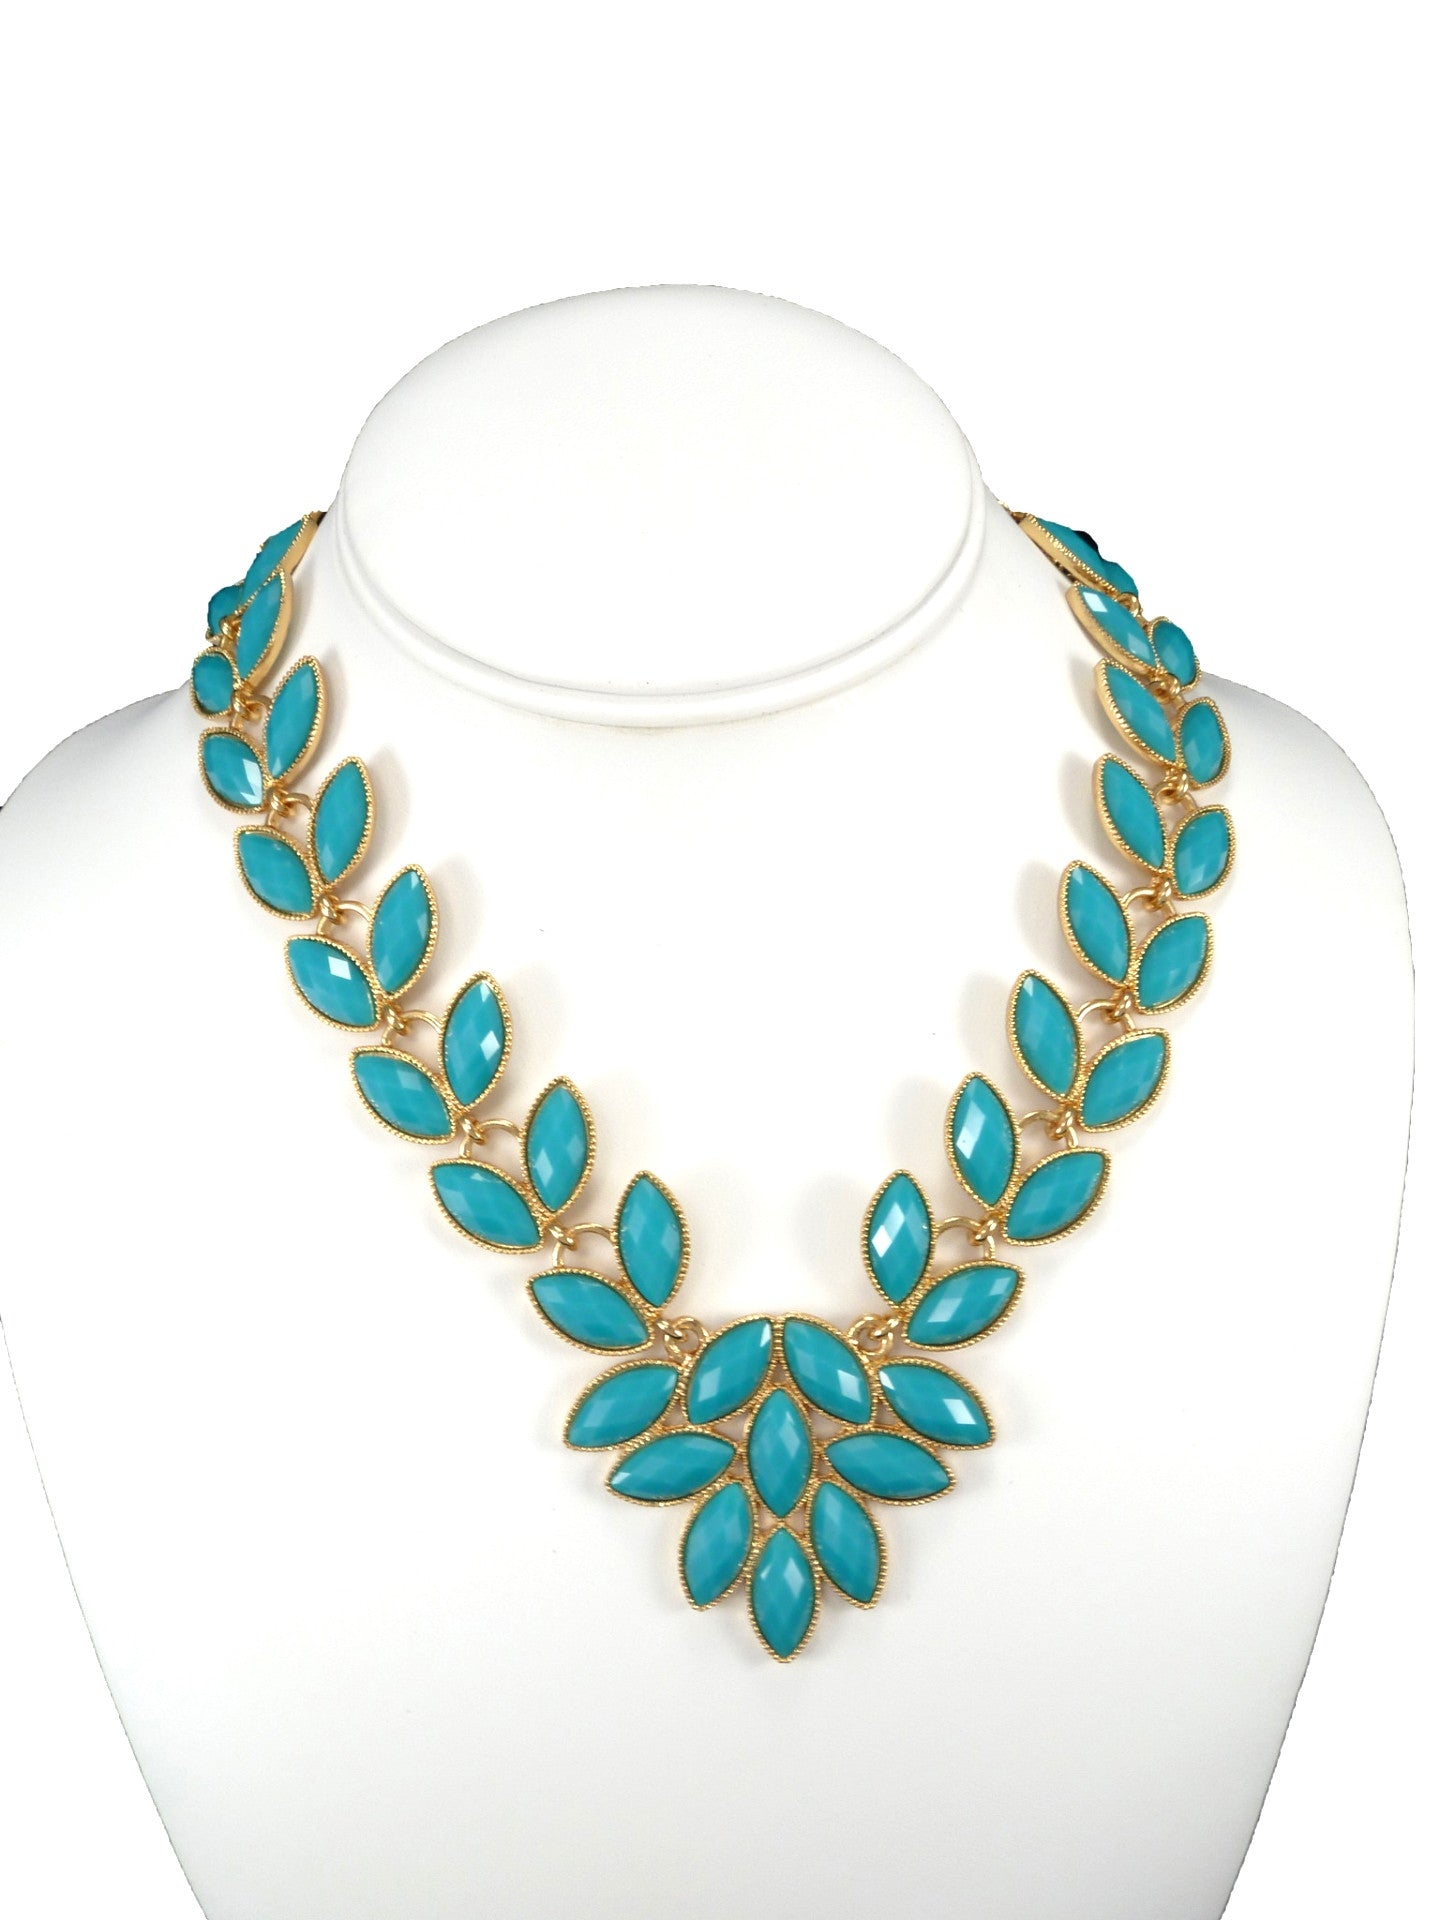 Turquoise Petal Necklace from Vanett